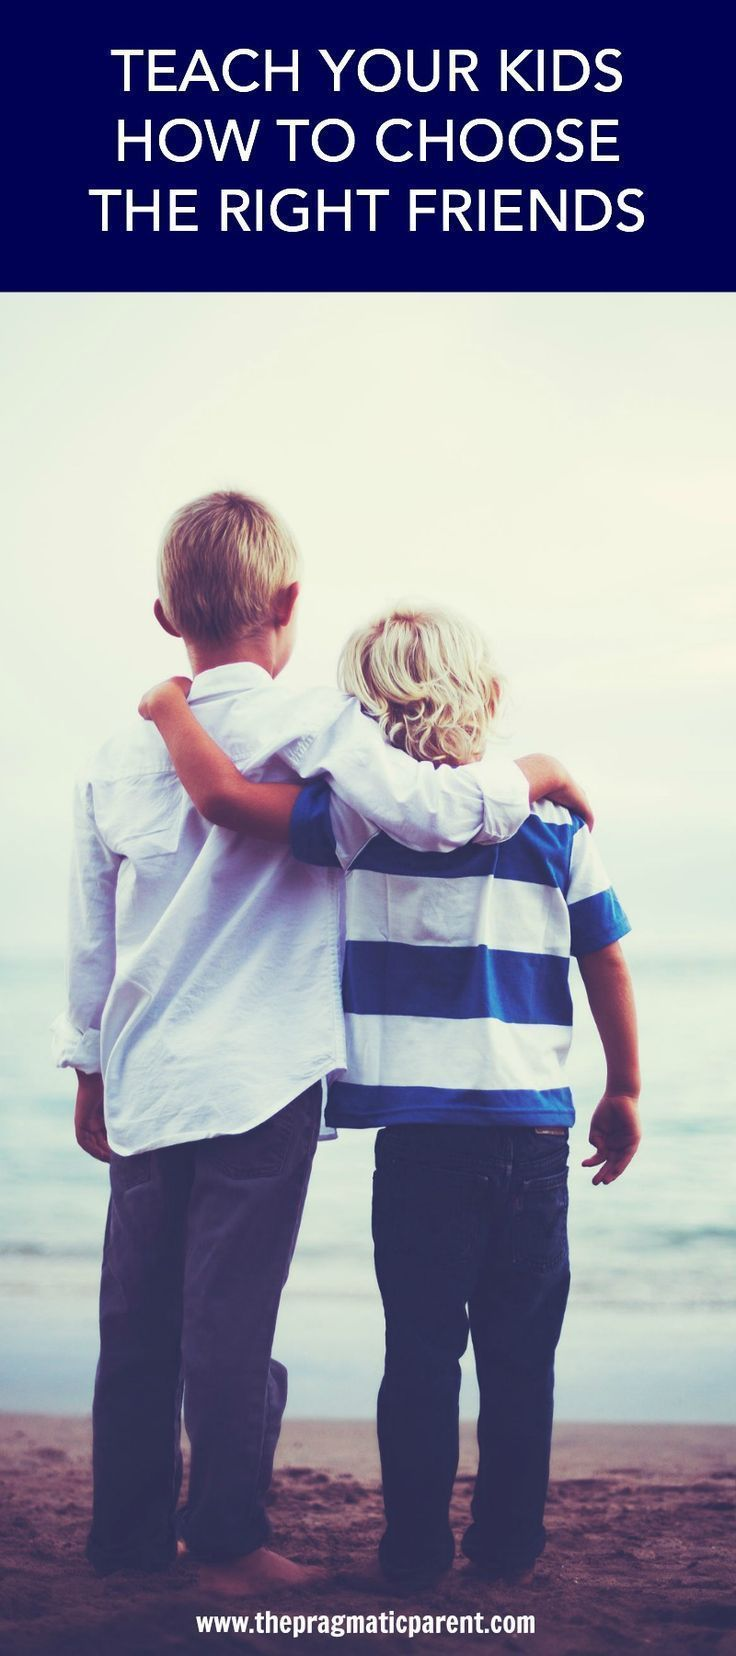 6 Encouraging ways parents can teach their children how to choose the right friends & have meaningful friendships. Having positive relationships bring joy and lasting memories for children. Demonstrate the supportive qualities in your own relationships so